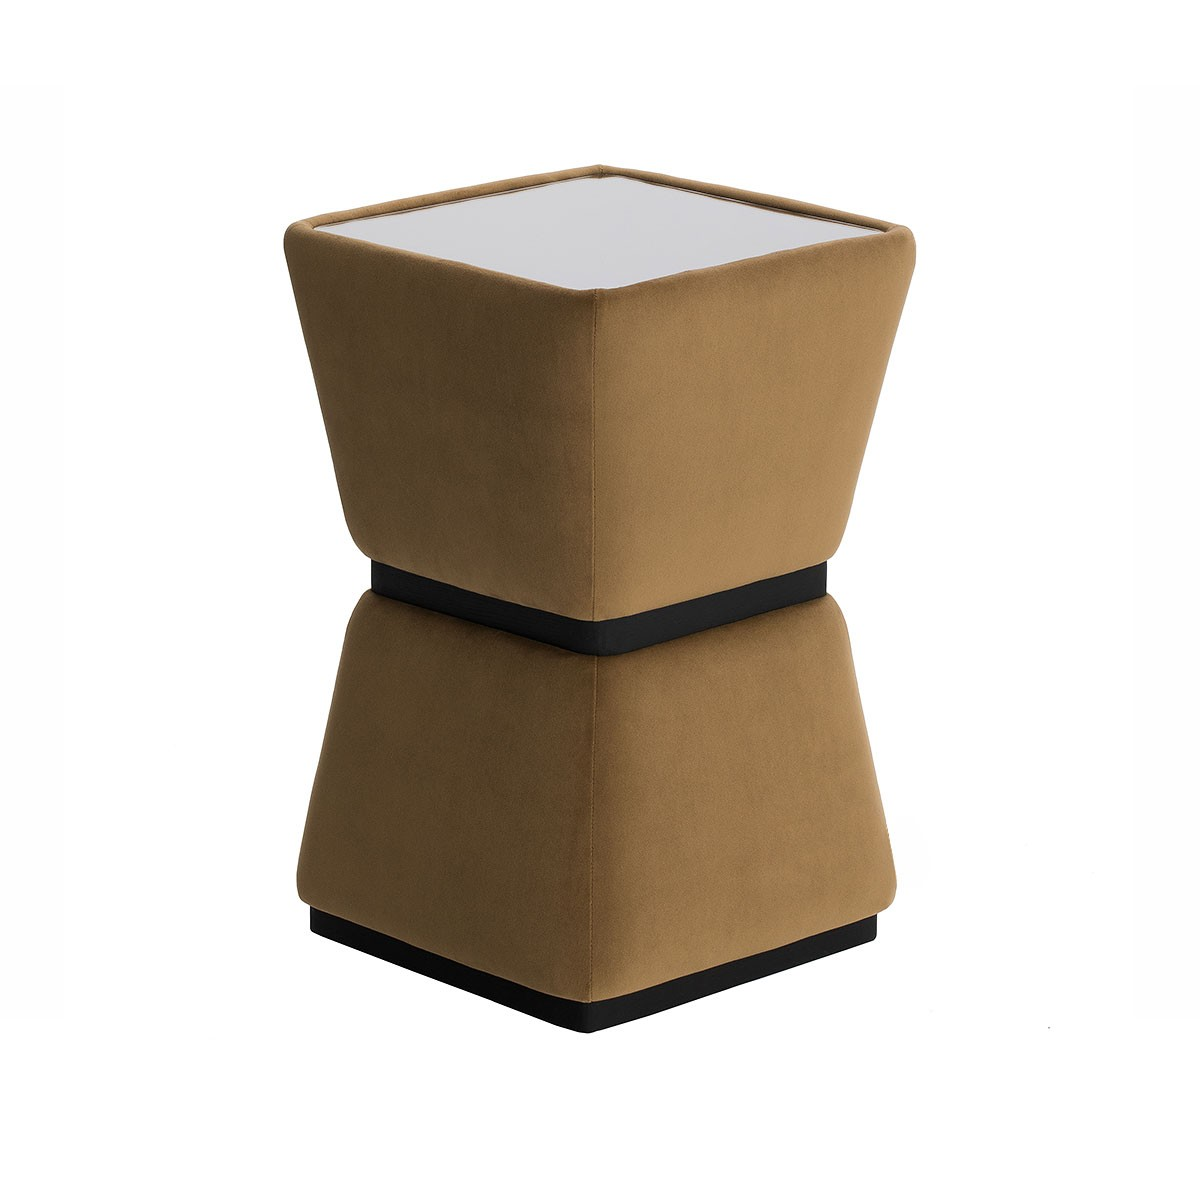 The Corset Side Table